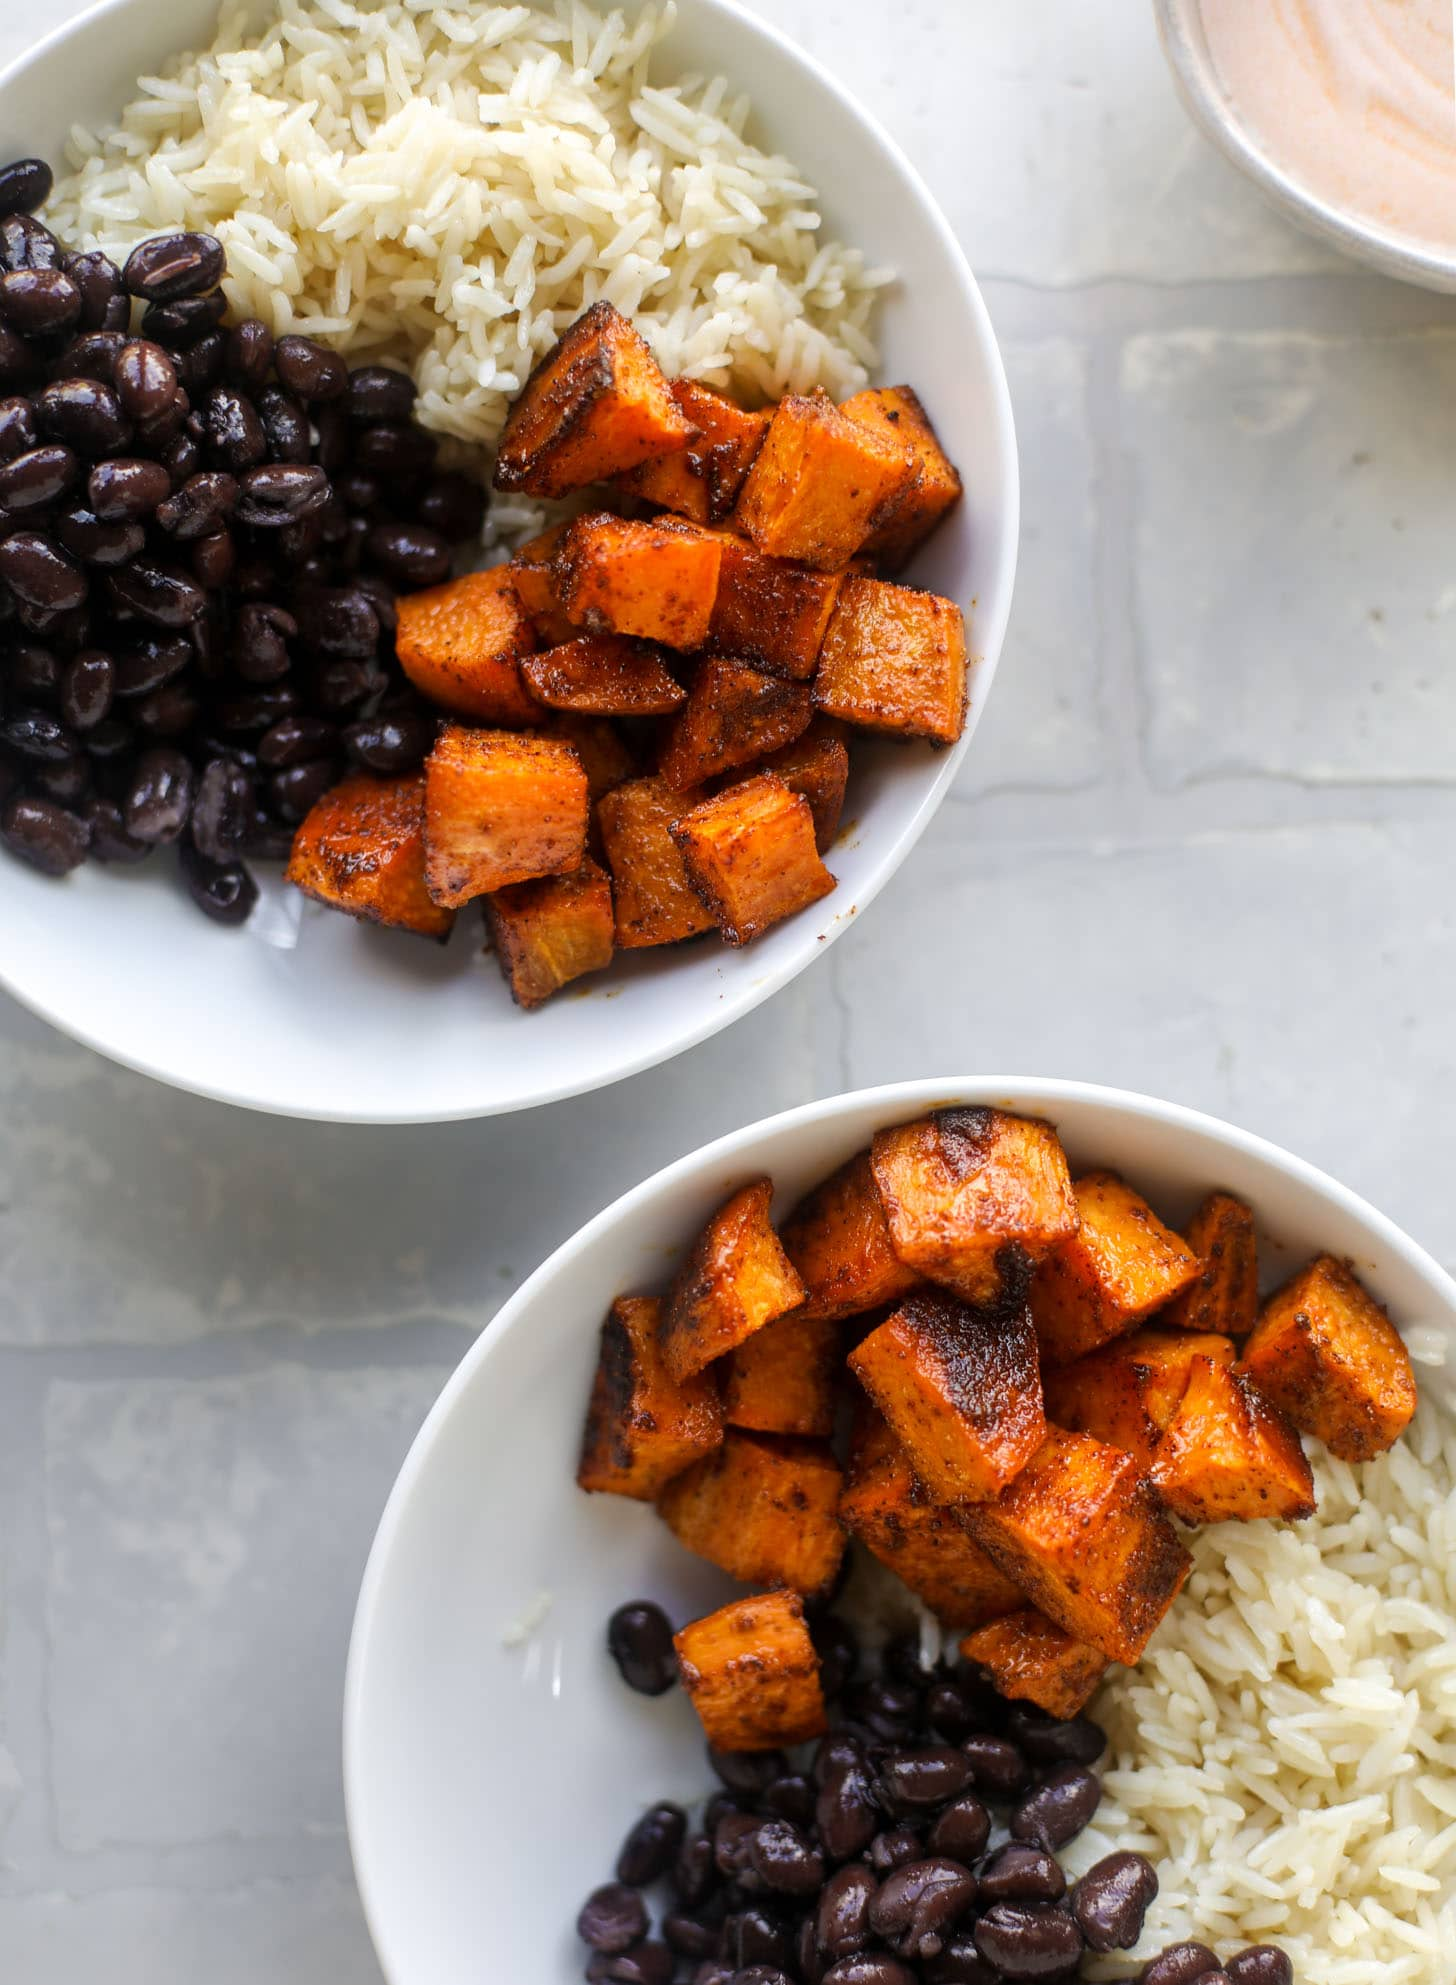 sweet potatoes, black beans and rice in a bowl